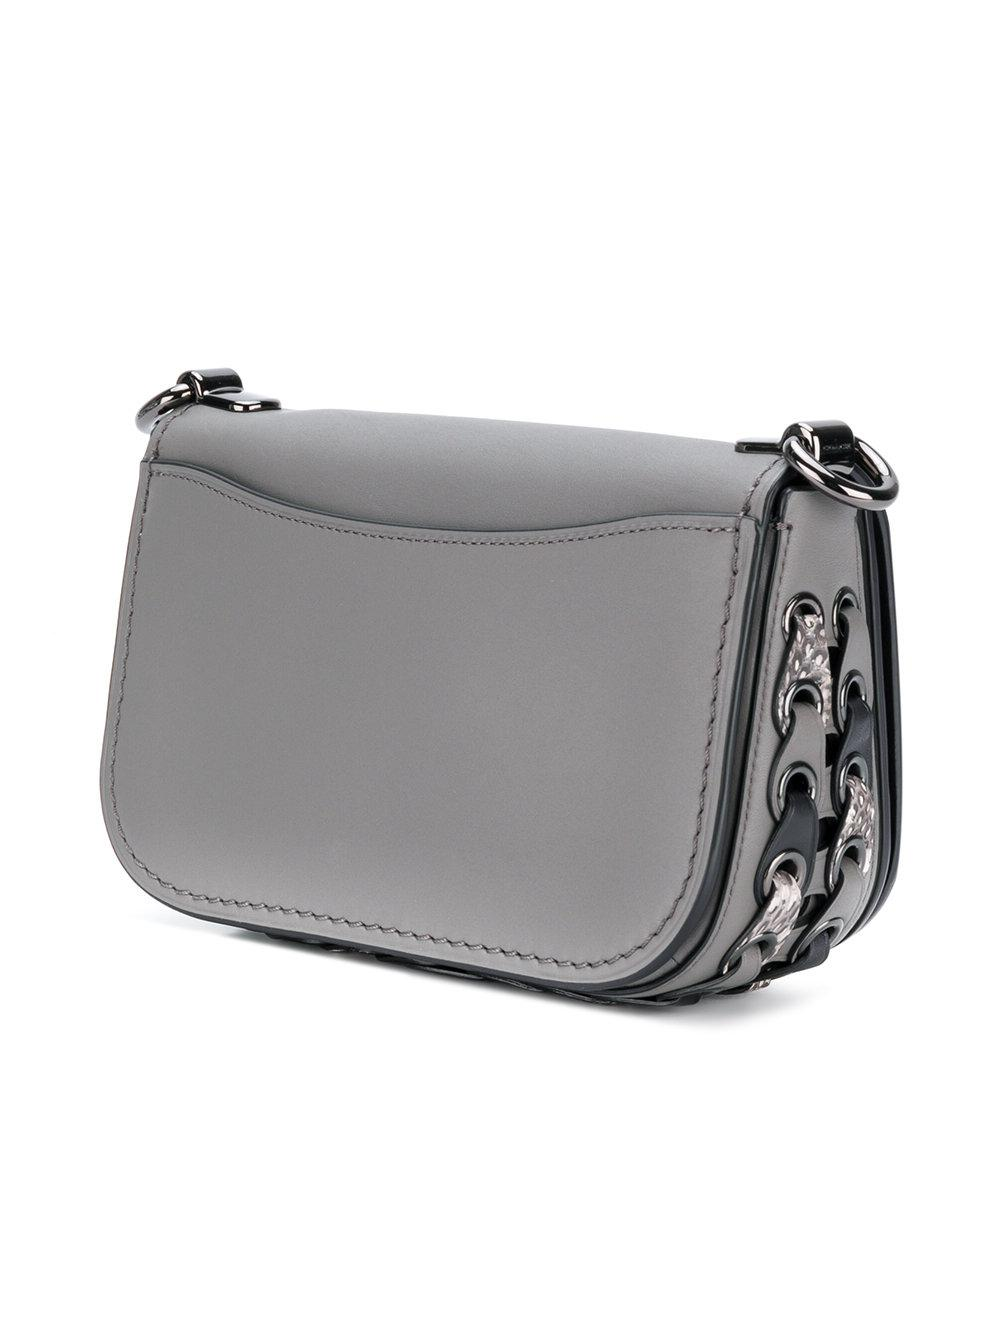 f9ac9d551 Lyst - COACH Swagger 20 Cross Body Bag in Gray